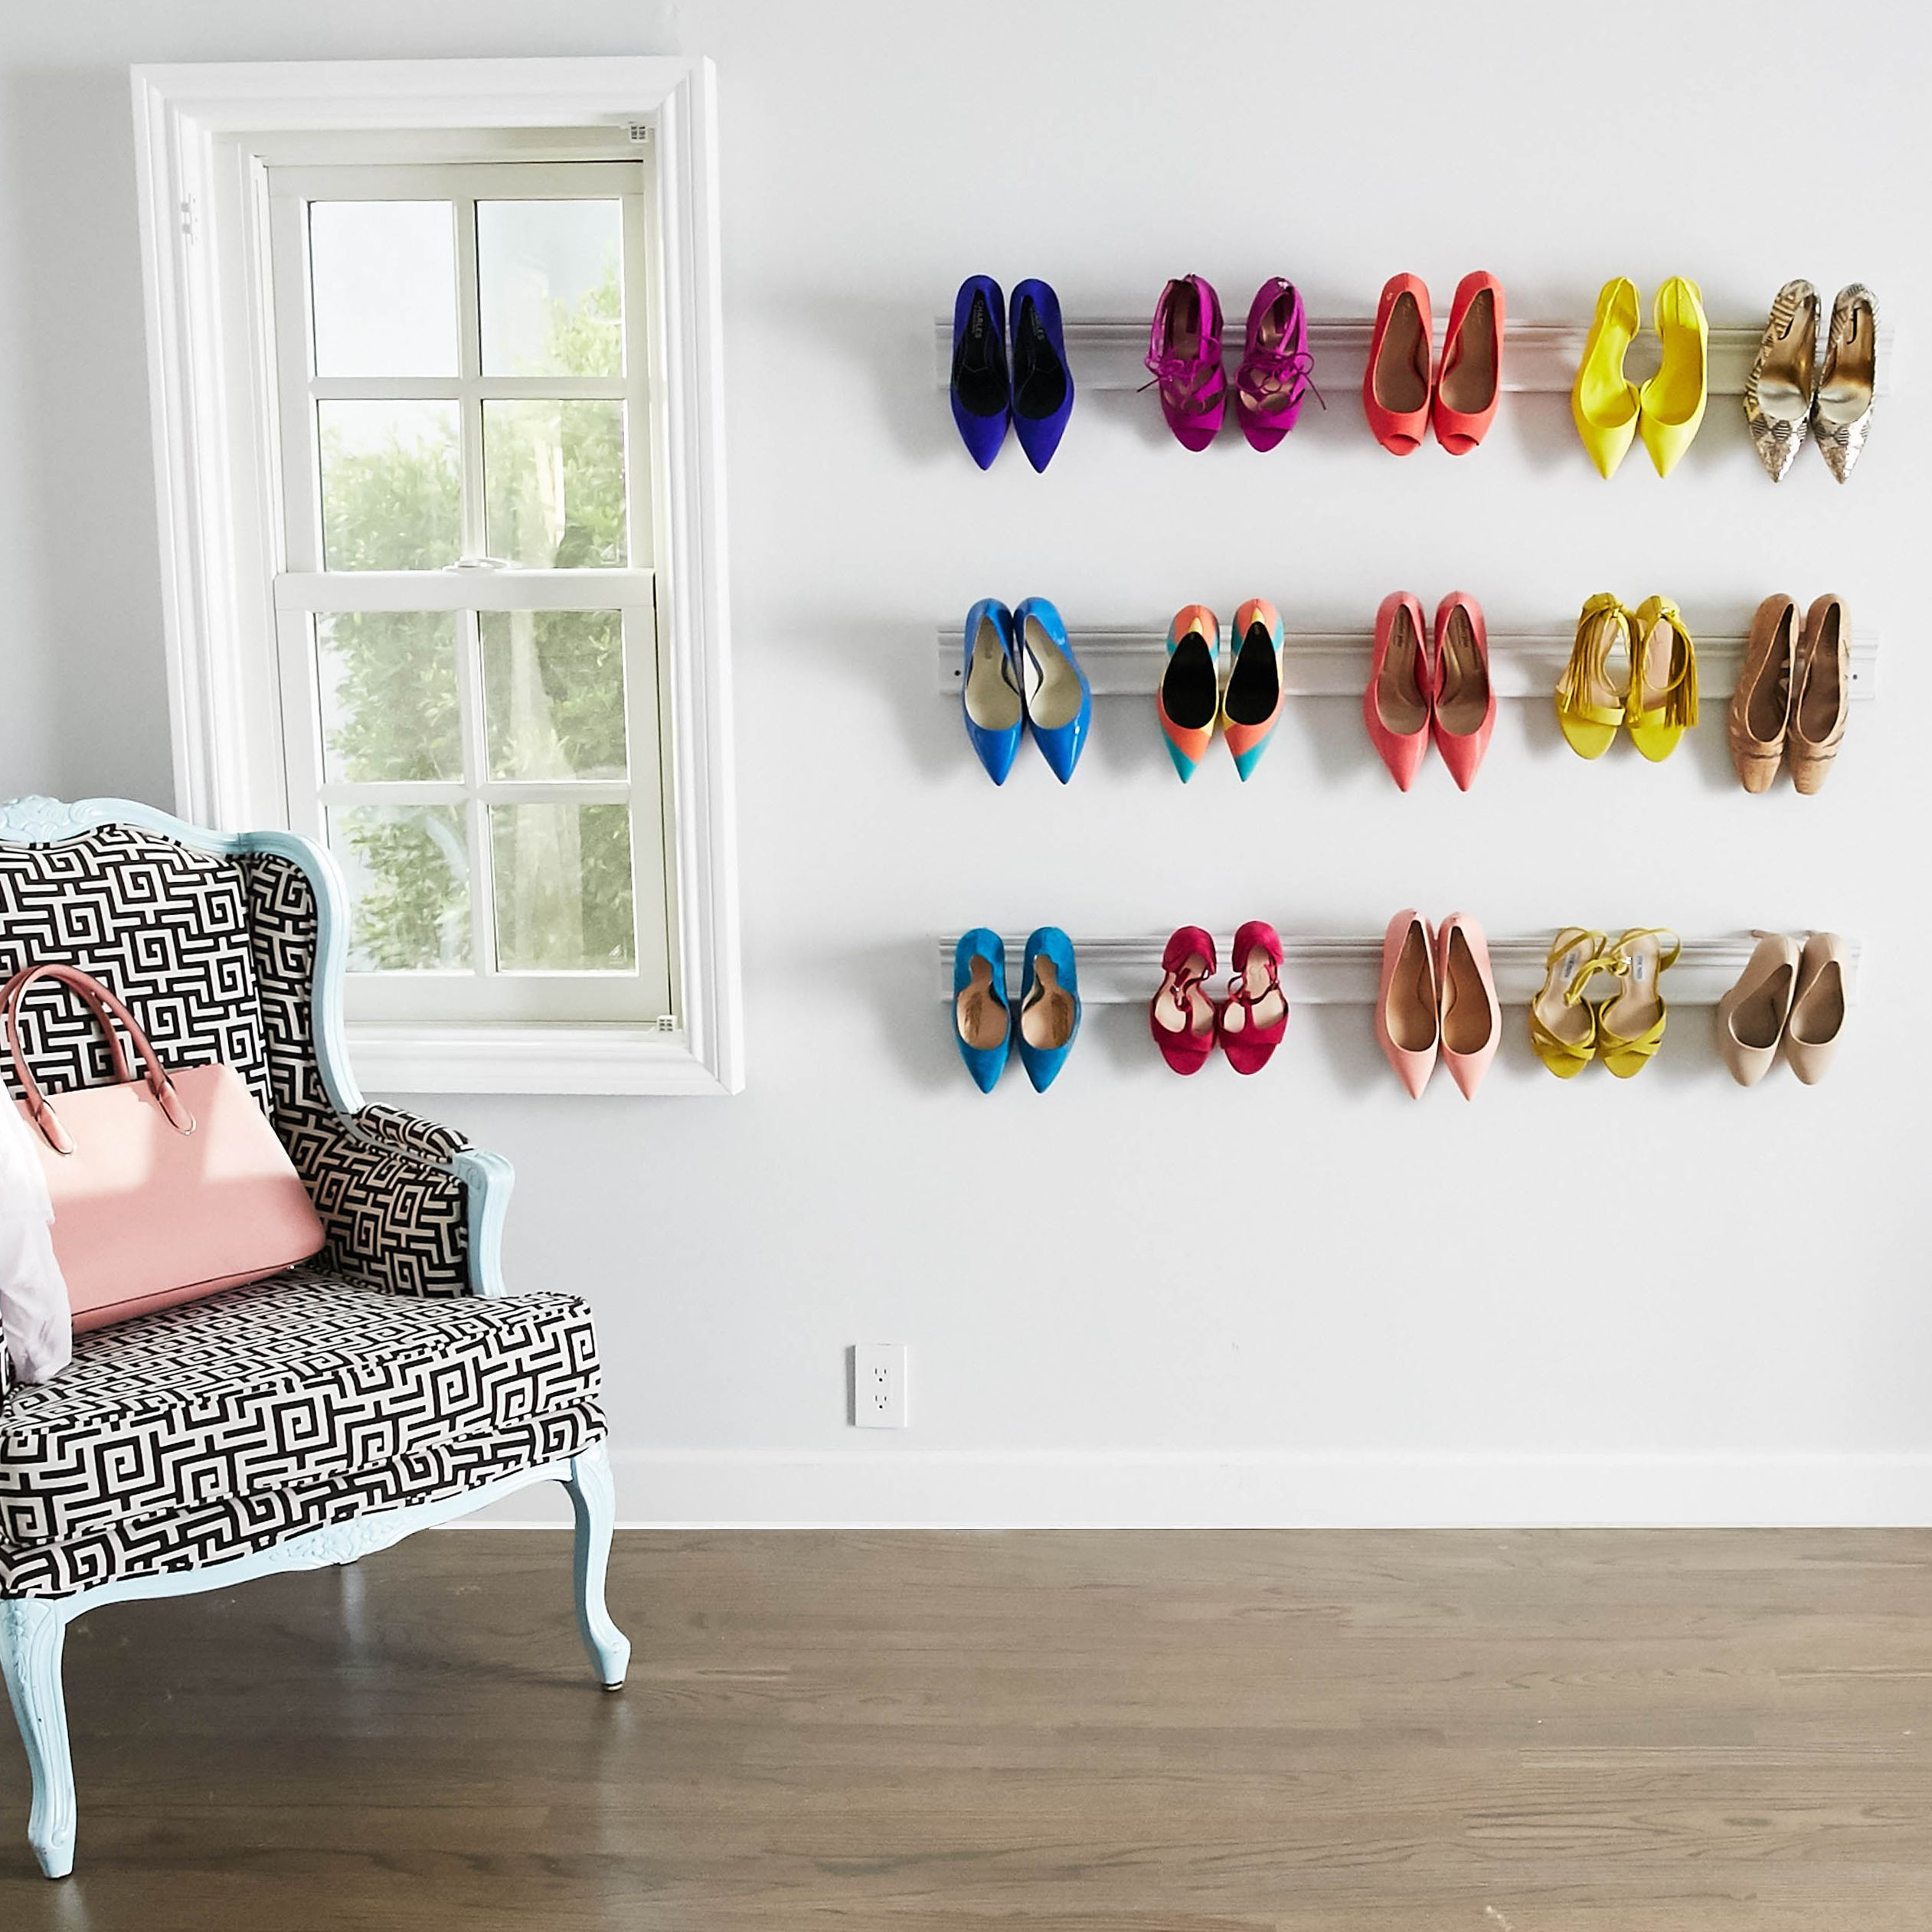 Diy Wall Mounted Shoe Rack In 6 Steps Easy And Fun Way To Show Off A High Heel Collection